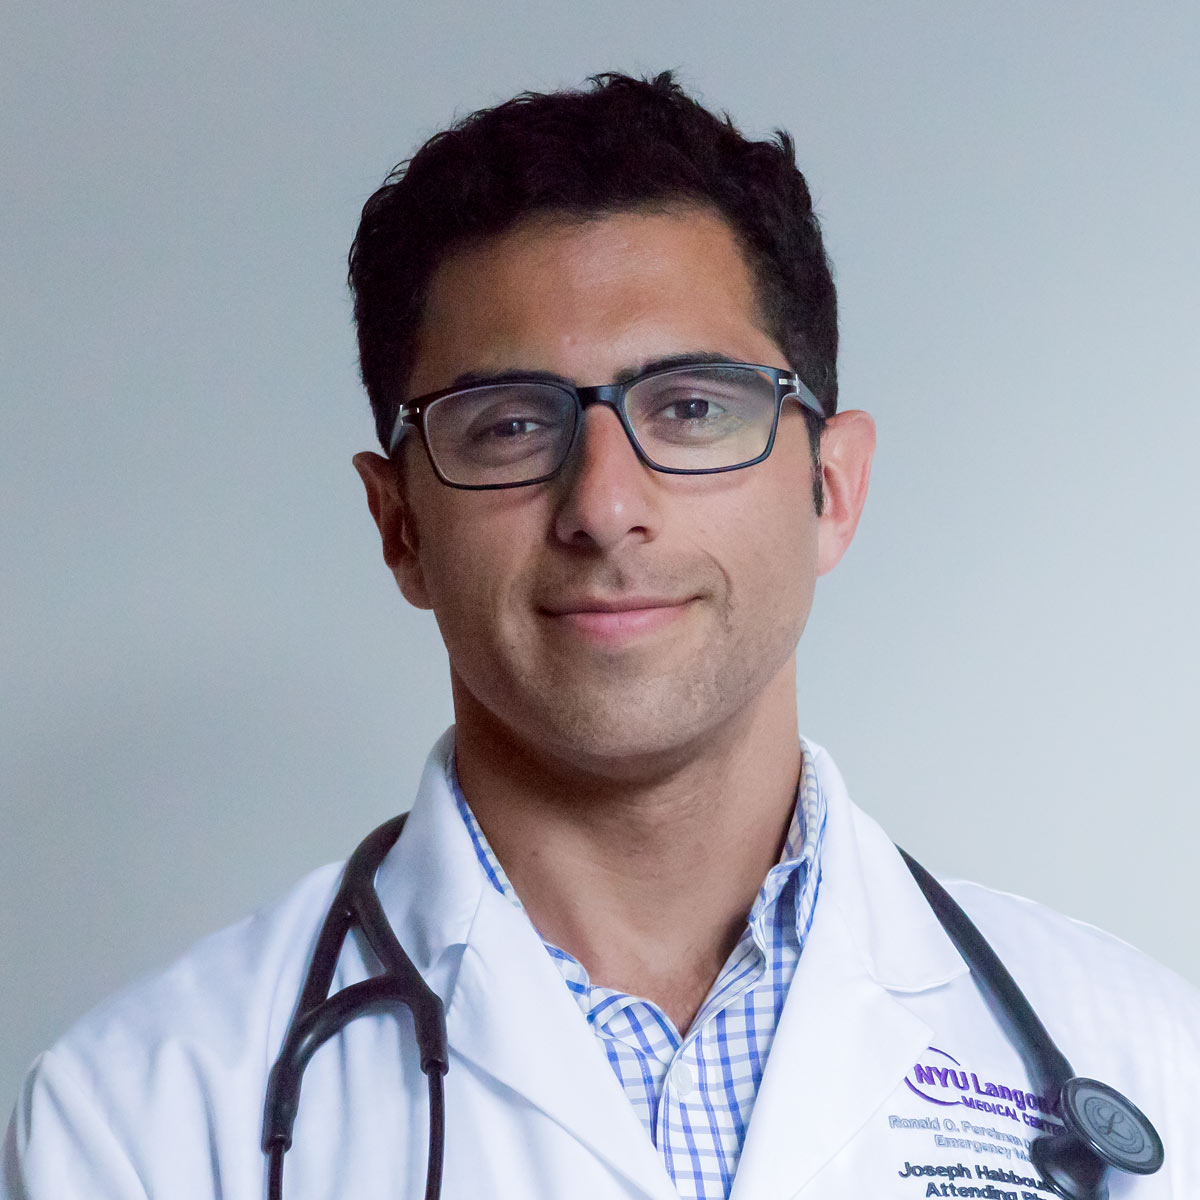 Joseph Habboushe at [NYU Langone Health]